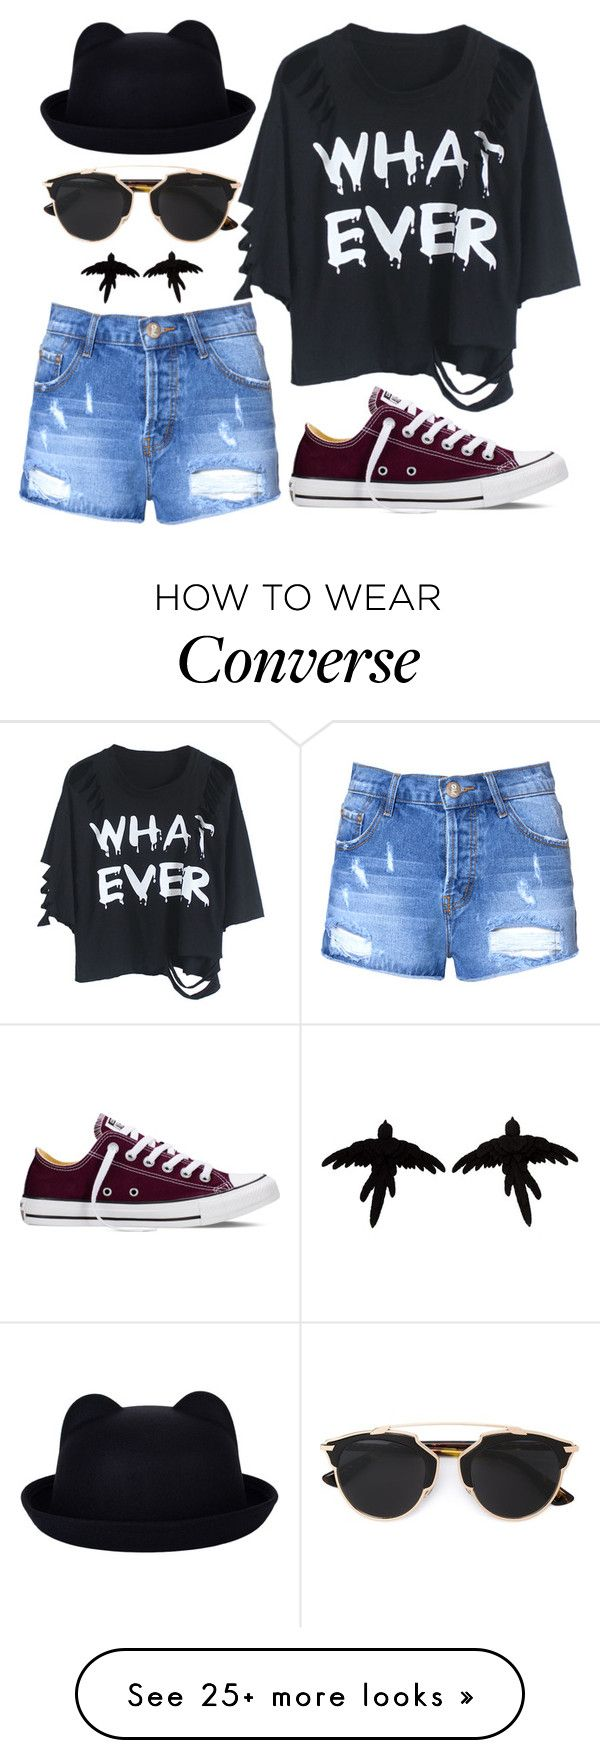 """""""Distressed Denim"""" by joslynaurora on Polyvore featuring Glamorous, WithChic, Converse, Christian Dior, olgafacesrok, women's clothing, women, female, woman and misses"""